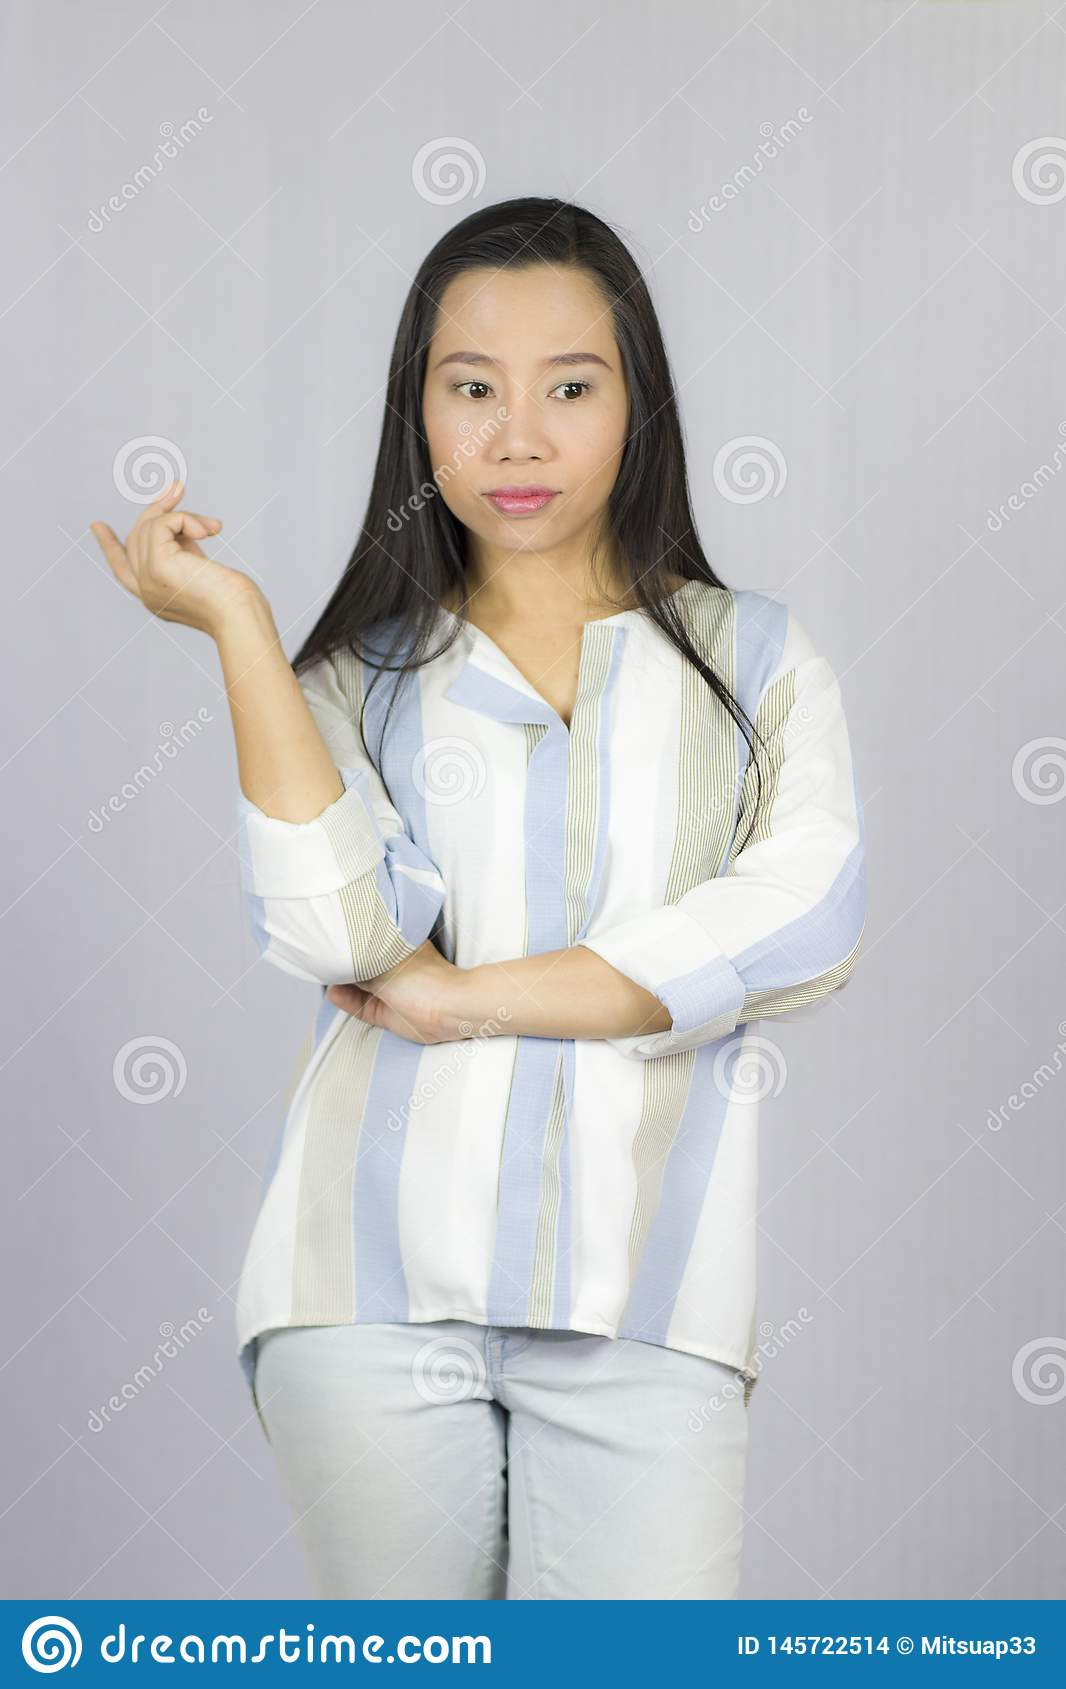 Businesswoman wearing shirt posing smile thinking isolated on gray background